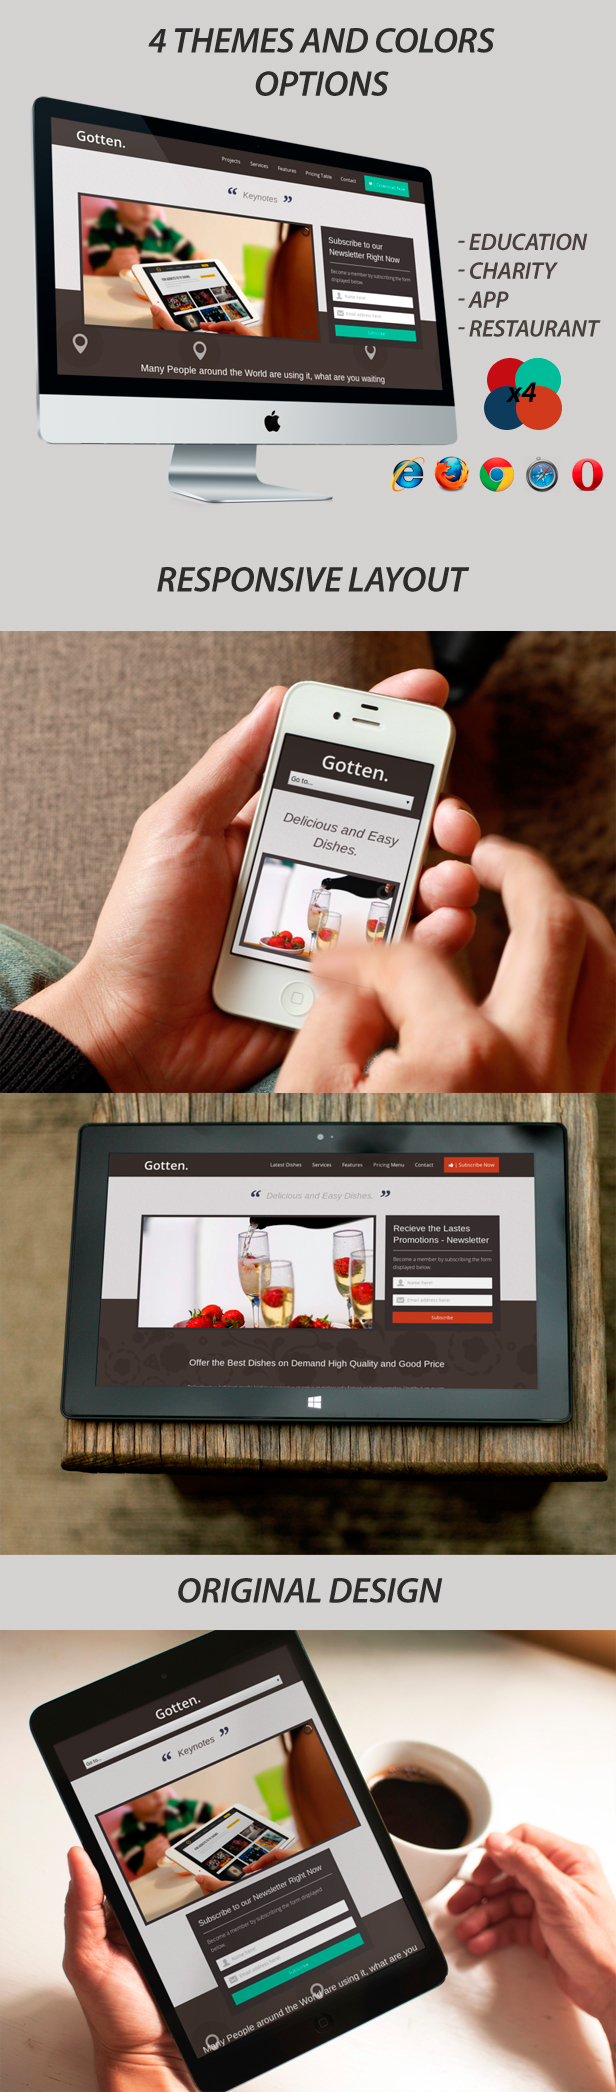 Gotten - Restaurant, App, Education, Charity Landing Page - 7